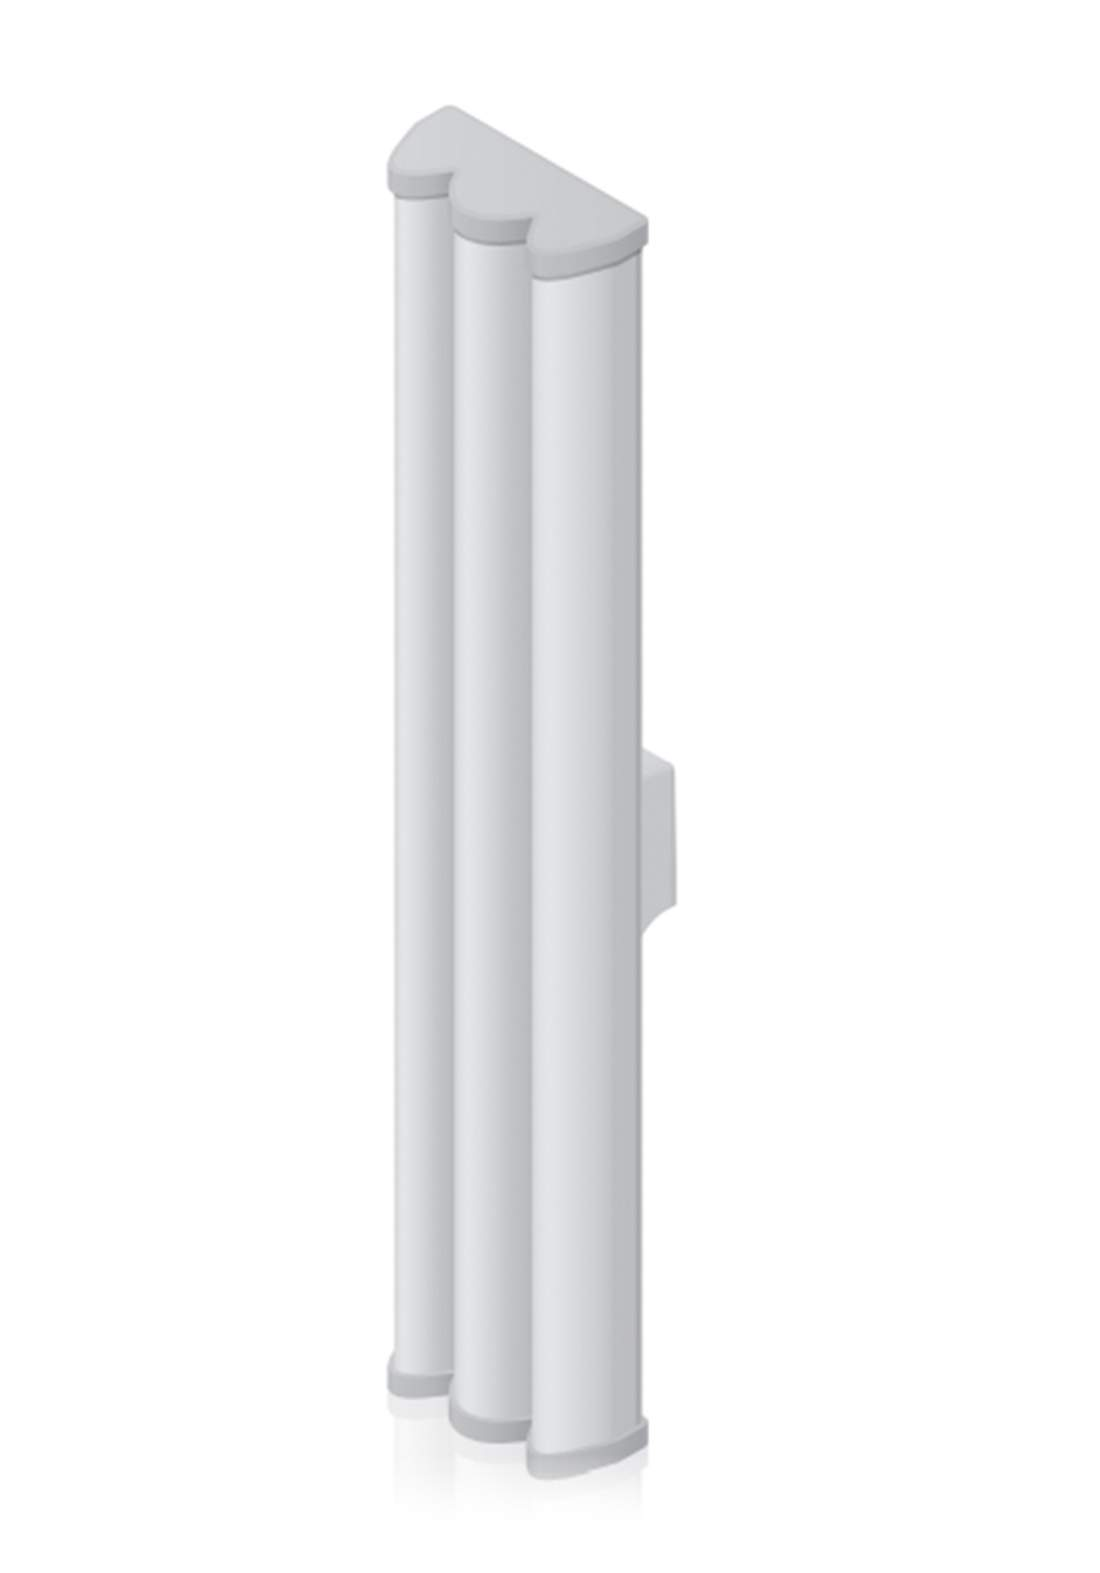 Ubiquiti Networks AM-5G19-120 AirMAX 5 GHz Sector Antenna - White هوائي